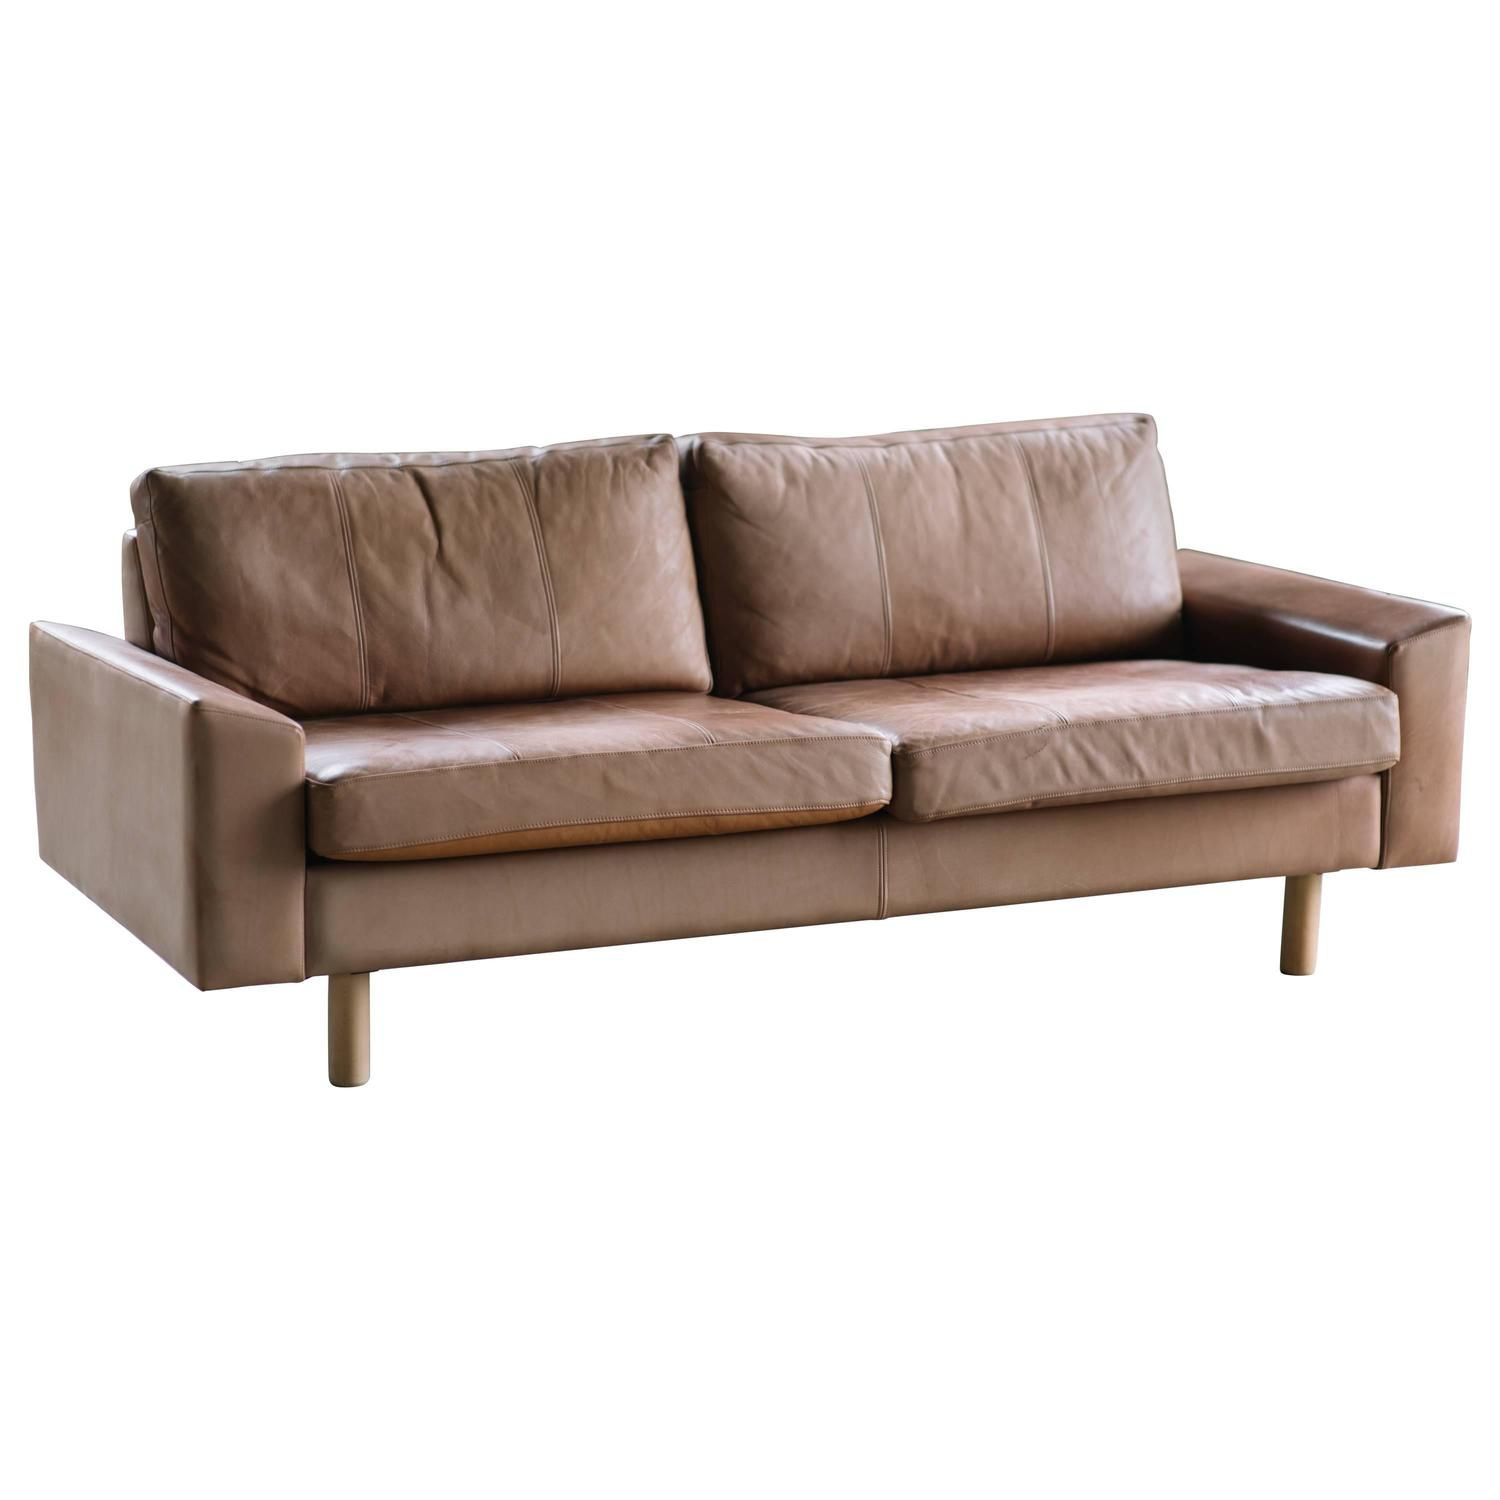 moods 3 seater leather sofa bed and recliner sand www gradschoolfairs